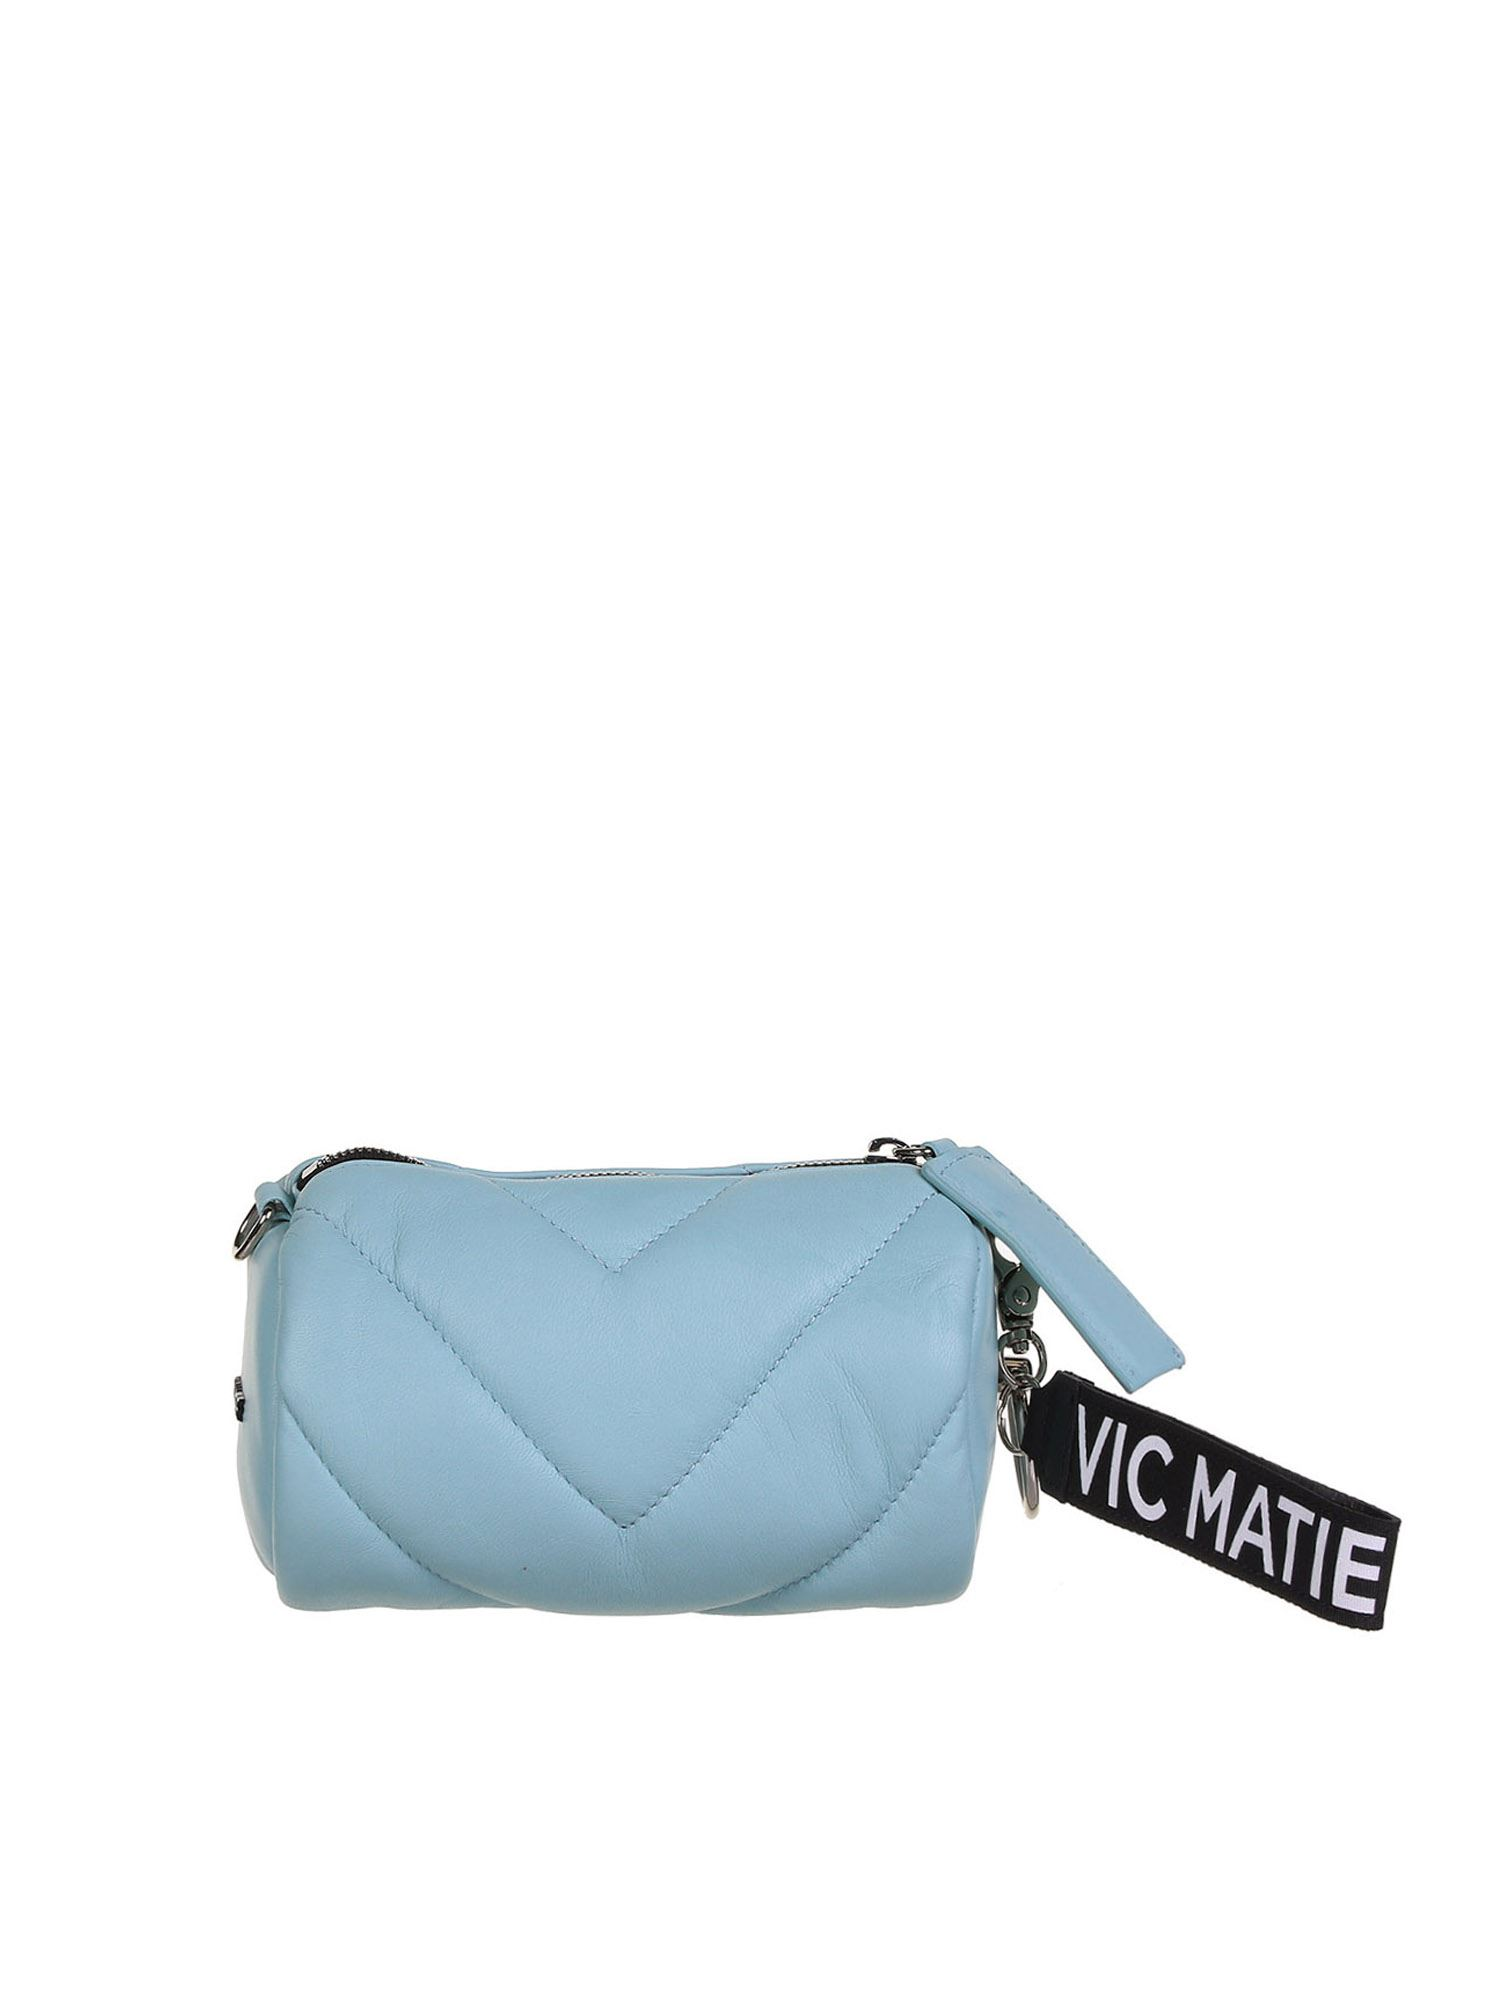 Vic Matie Leathers DAVE MINI BAG IN LIGHT BLUE